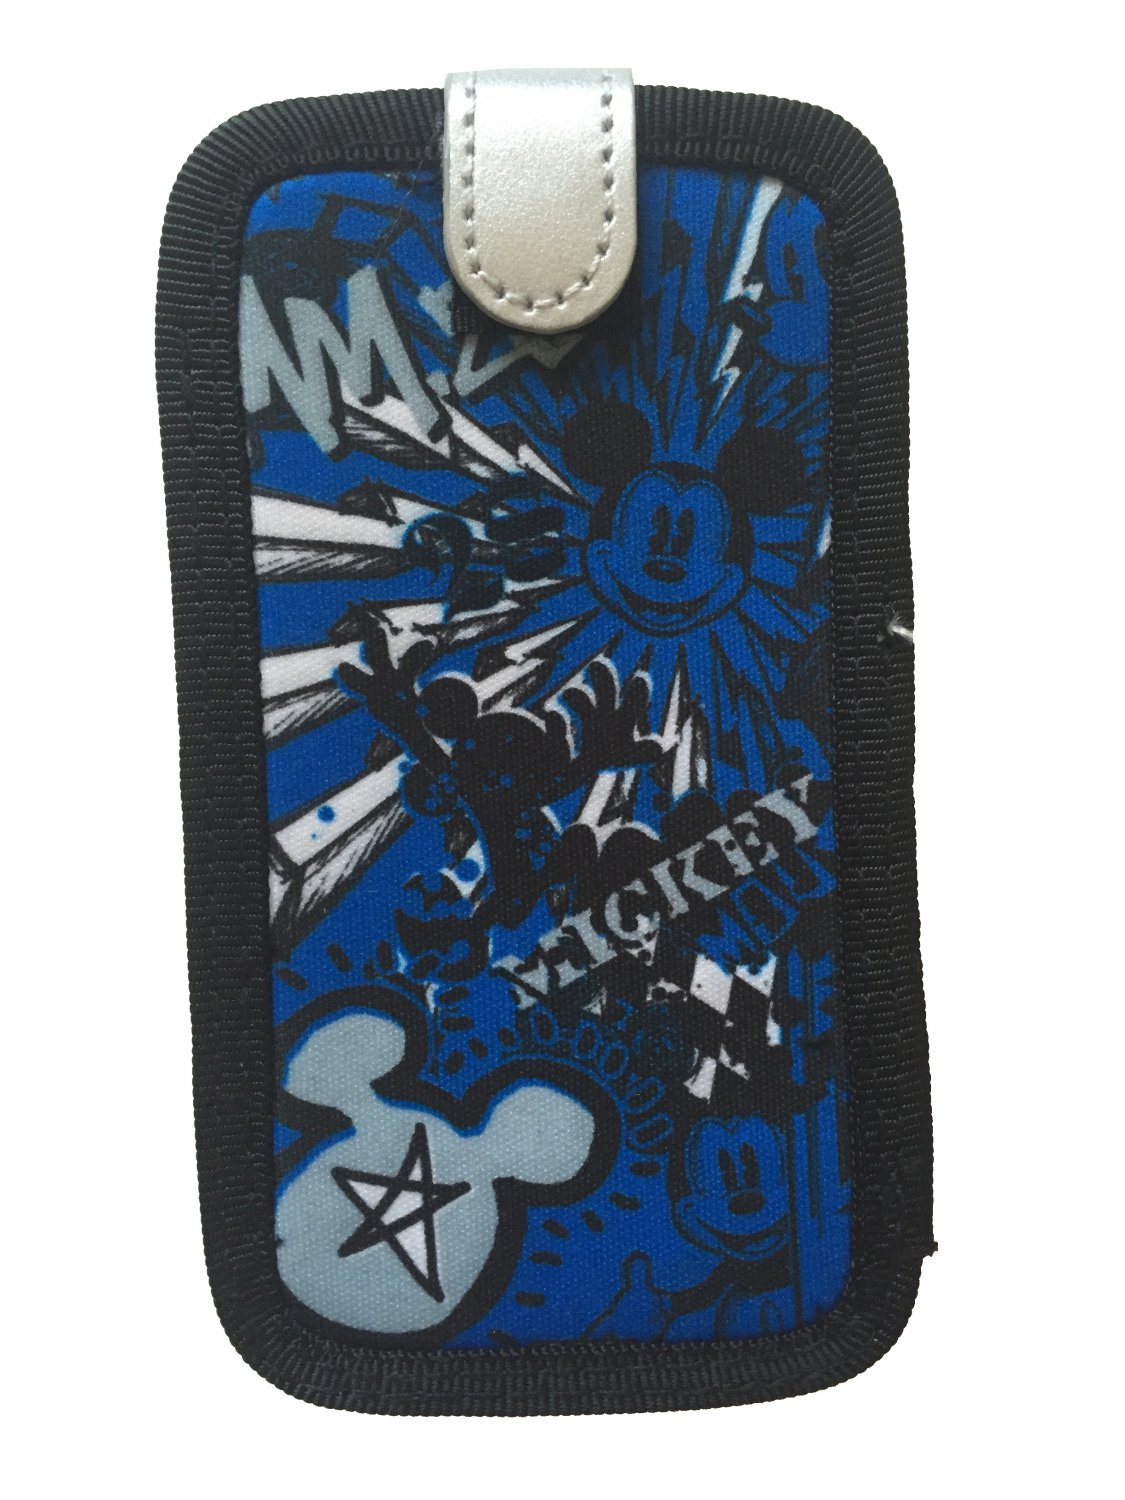 Disney Mickey Mouse Smartphone Cell Phone Case Graffiti Blue/Silver